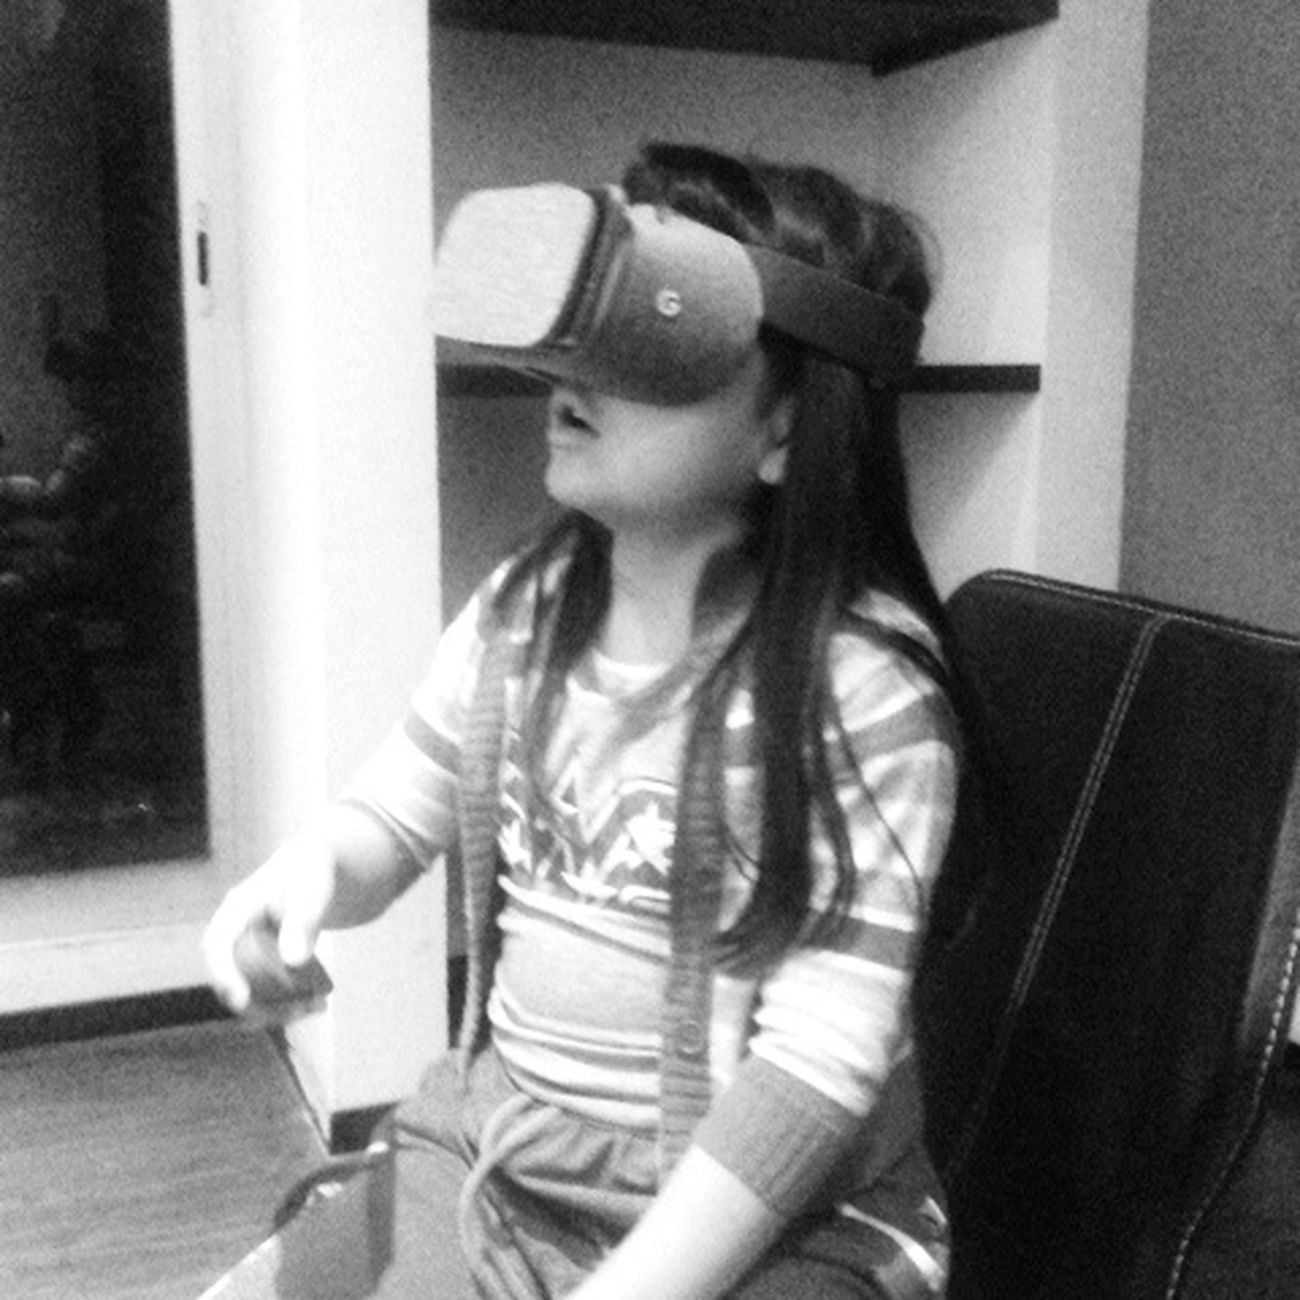 Home Interior Indoors  Taking Photos One Girl Only One Person Childhood Vr Daydream Kids And Technology Google Google Daydream